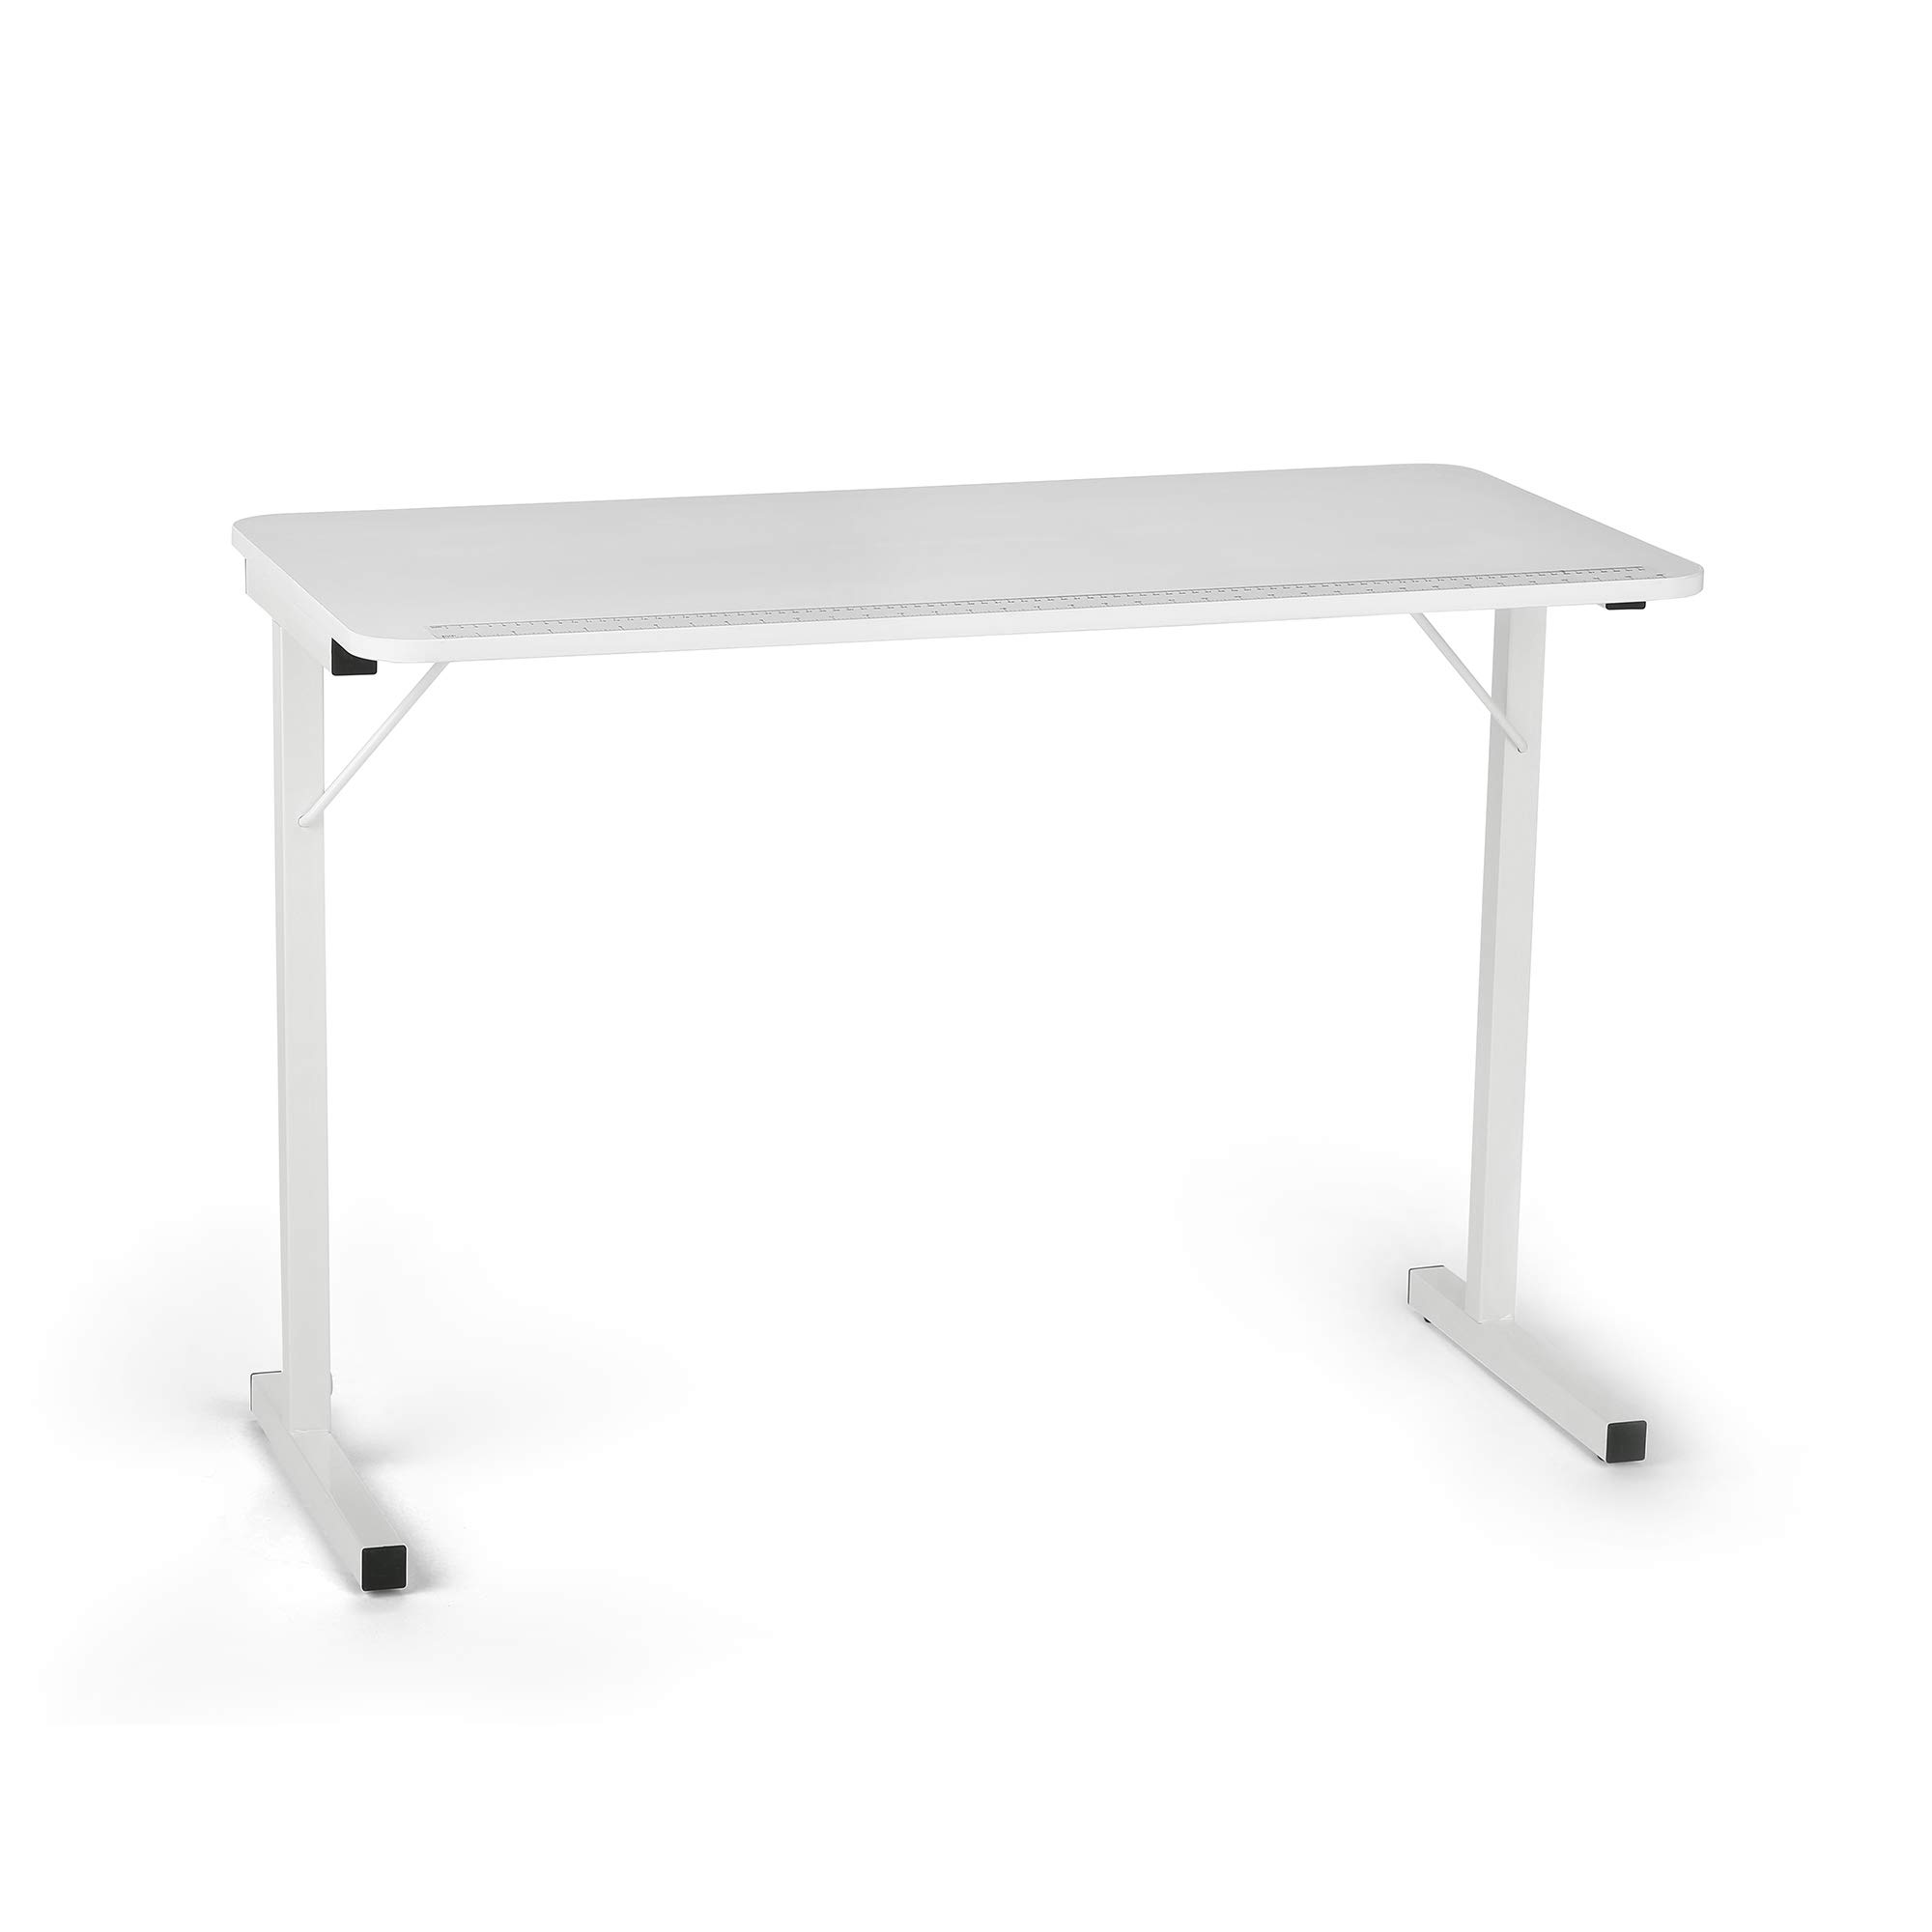 Arrow 601SP Crafts Table - White Finish by Arrow Cabinets